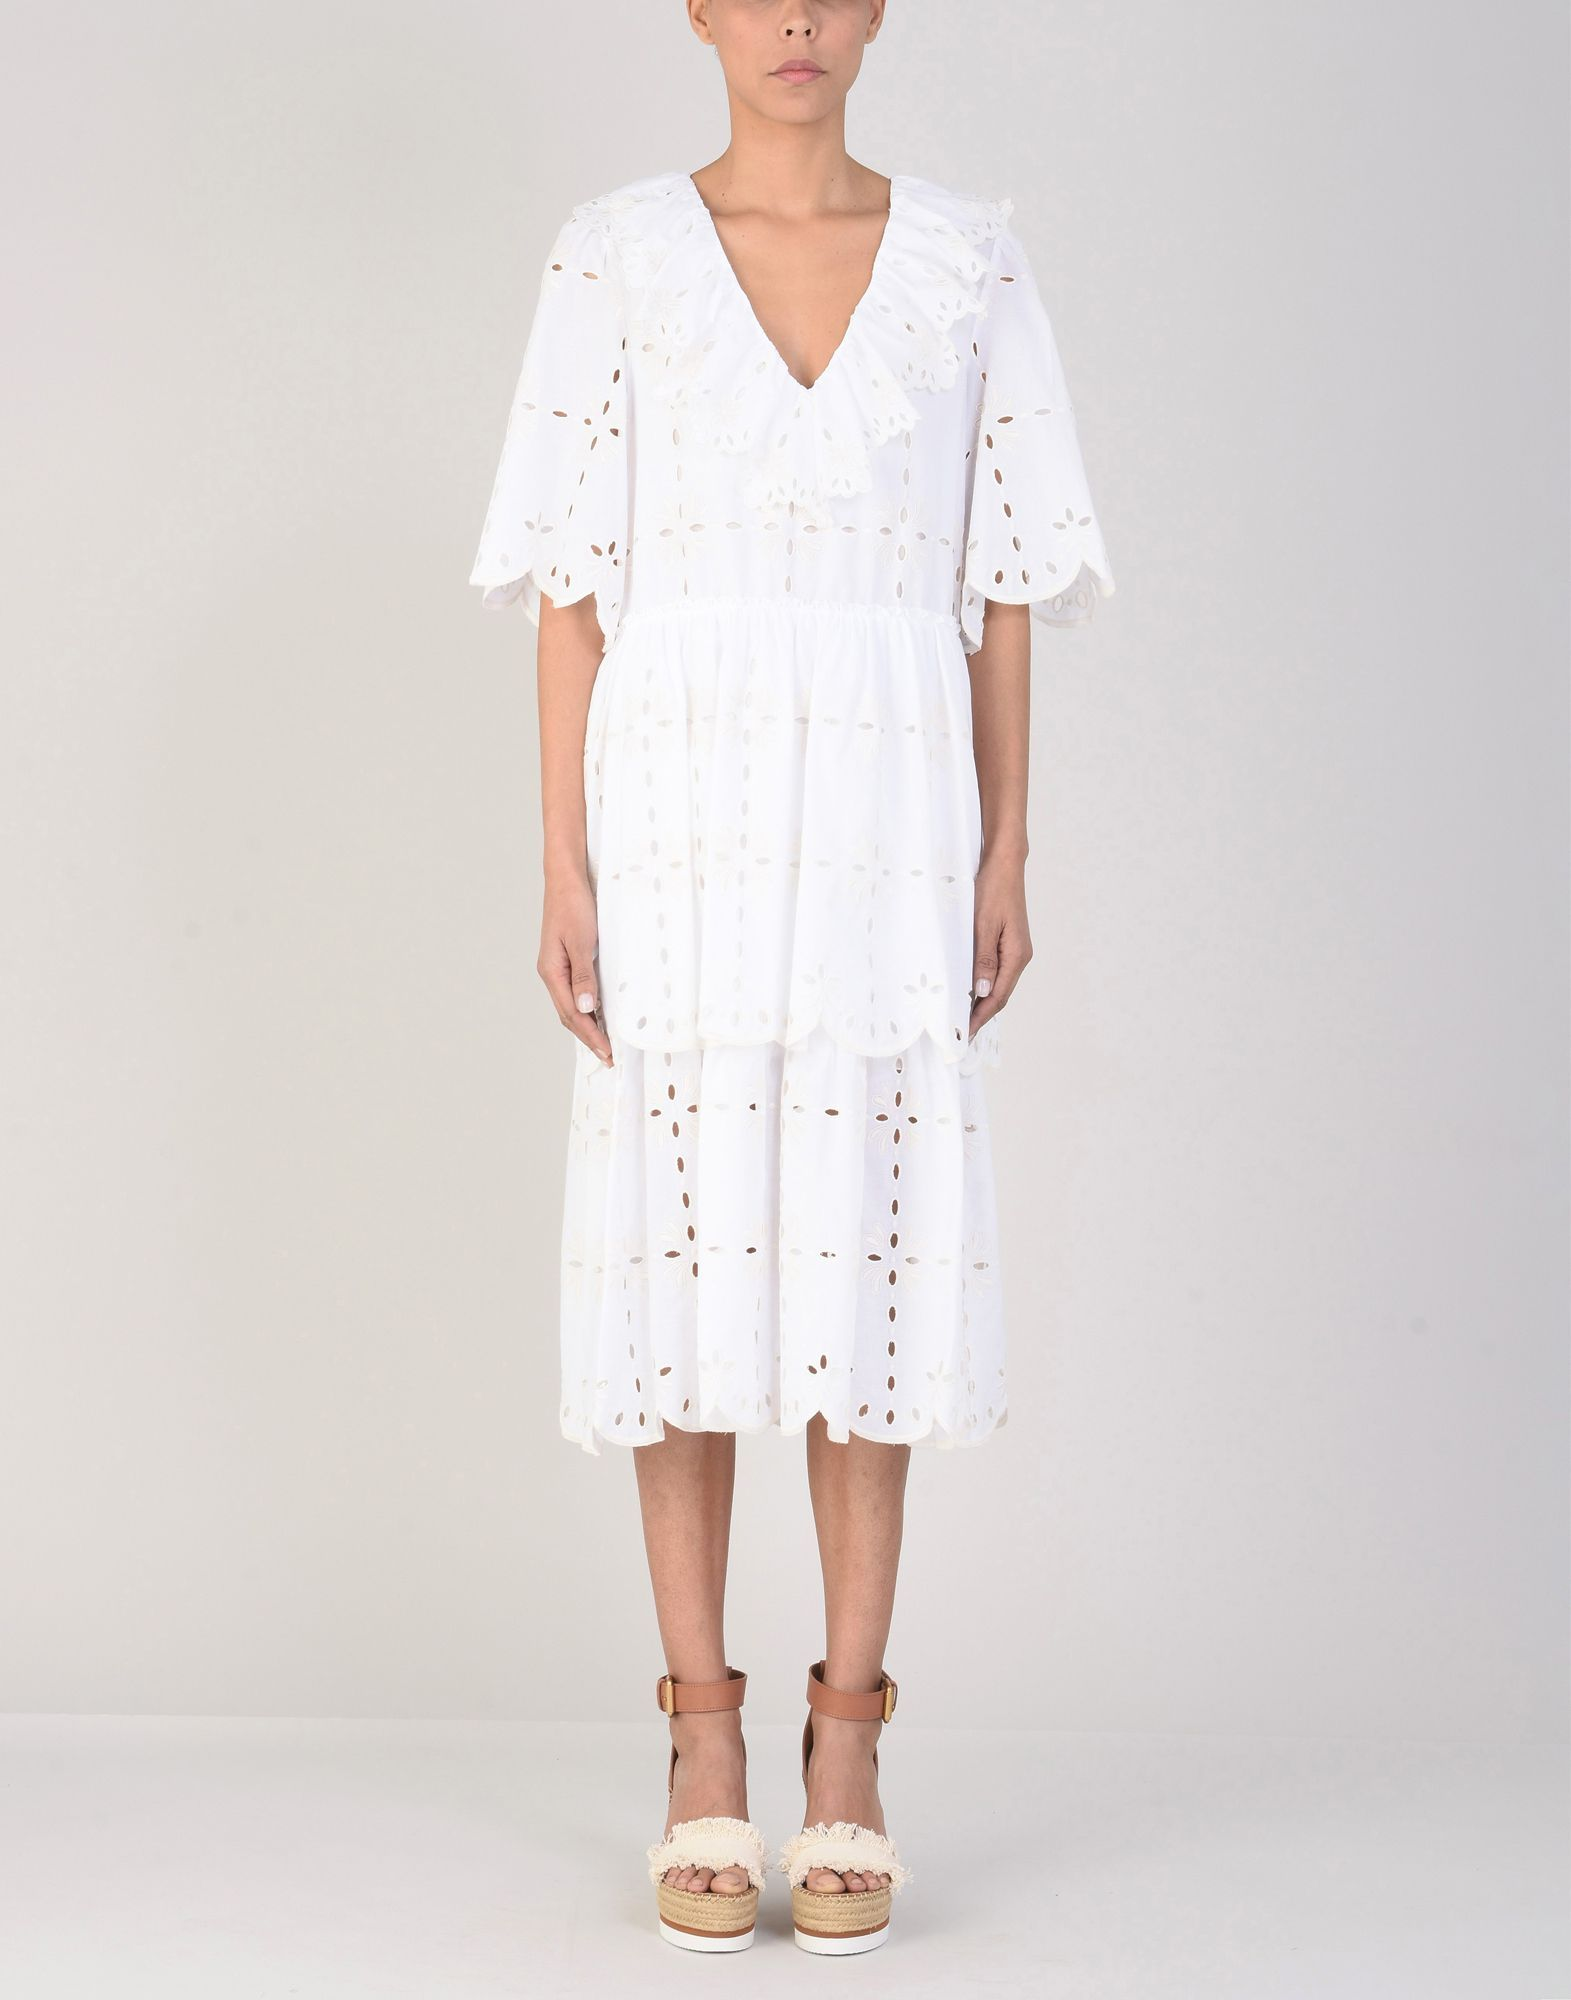 See By Chloe White Cotton Dress